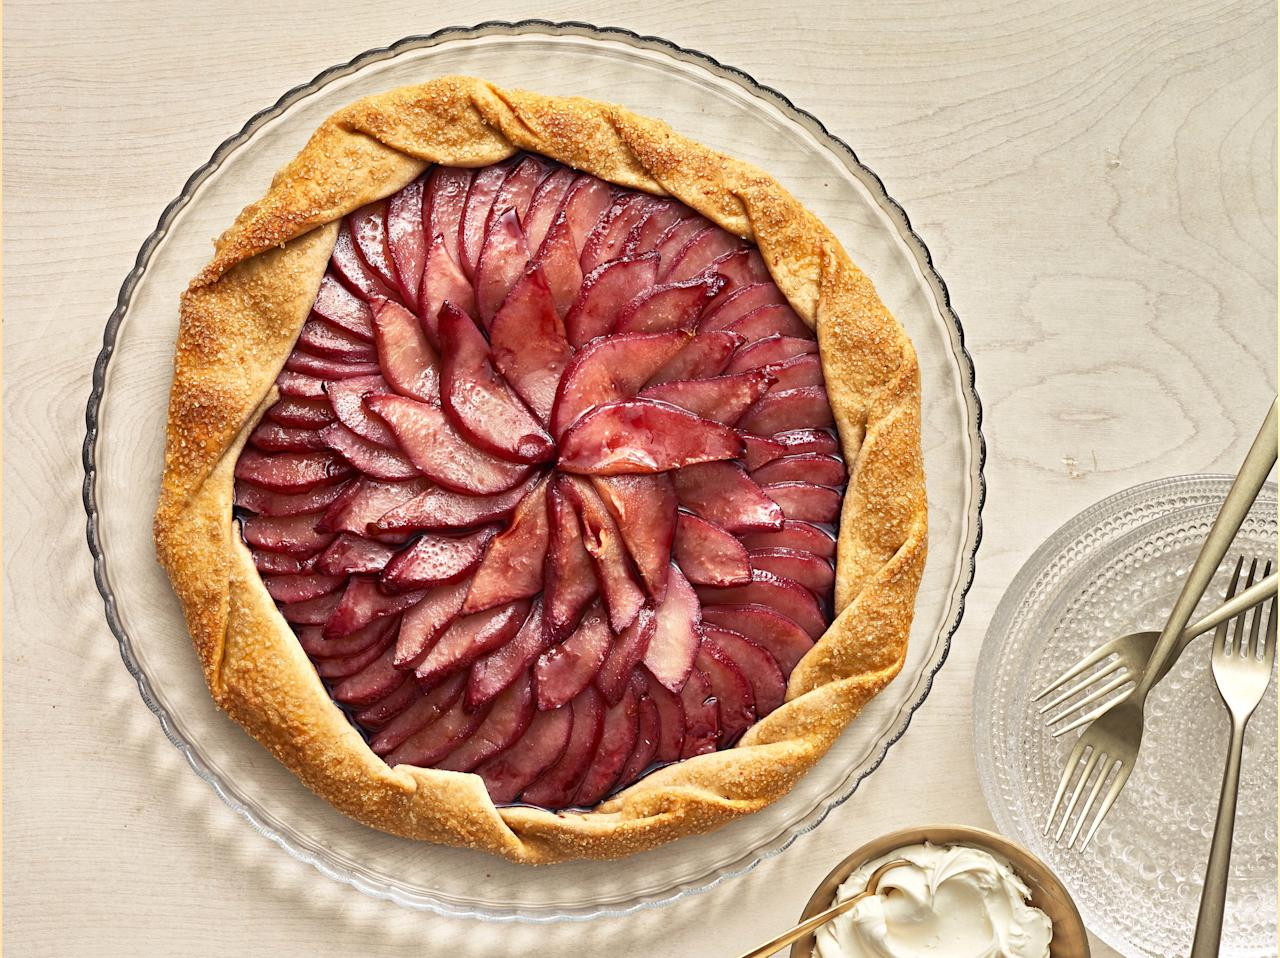 """<p><strong>Try this recipe: </strong><a href=""""https://www.health.com/recipes/red-wine-poached-pear-galette"""">Red Wine-Poached Pear Galette</a></p> <p>Pears are great for fall, but these are brimming with flavor after being poached in red wine. </p> <p><strong>Ingredients:</strong> dry red wine, granulated sugar, whole star anise, Anjou pears, Whole-Wheat Piecrust Dough, All-purpose flour, egg, turbinado sugar, kosher salt, mascarpone cheese, powdered sugar</p> <p><strong>Calories: </strong>264</p>"""